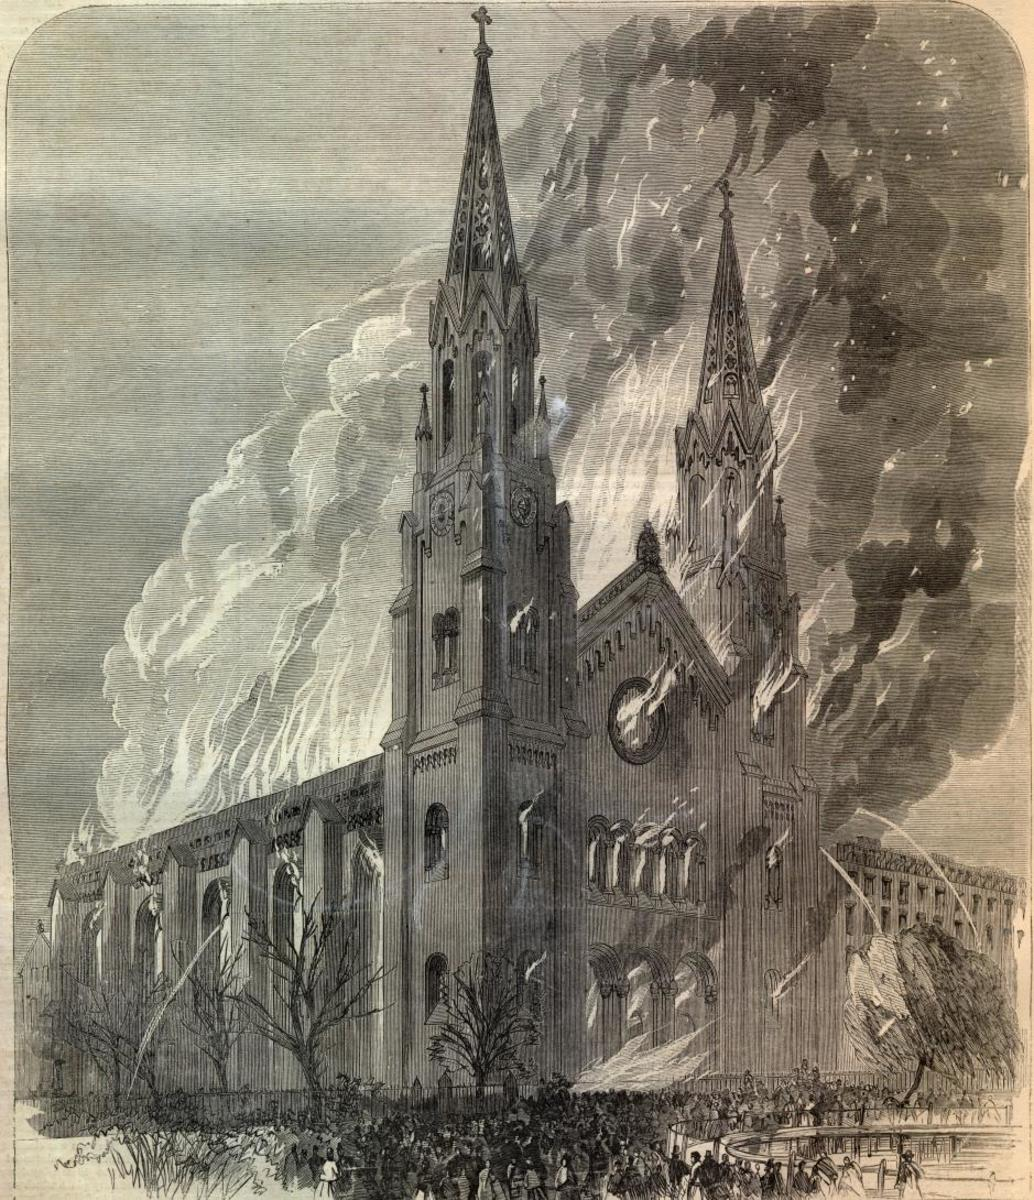 PROGRESSIVE GOVERNMENT CONDONED THE OF BURNING CHURCHES BY HOMOSEXUALS